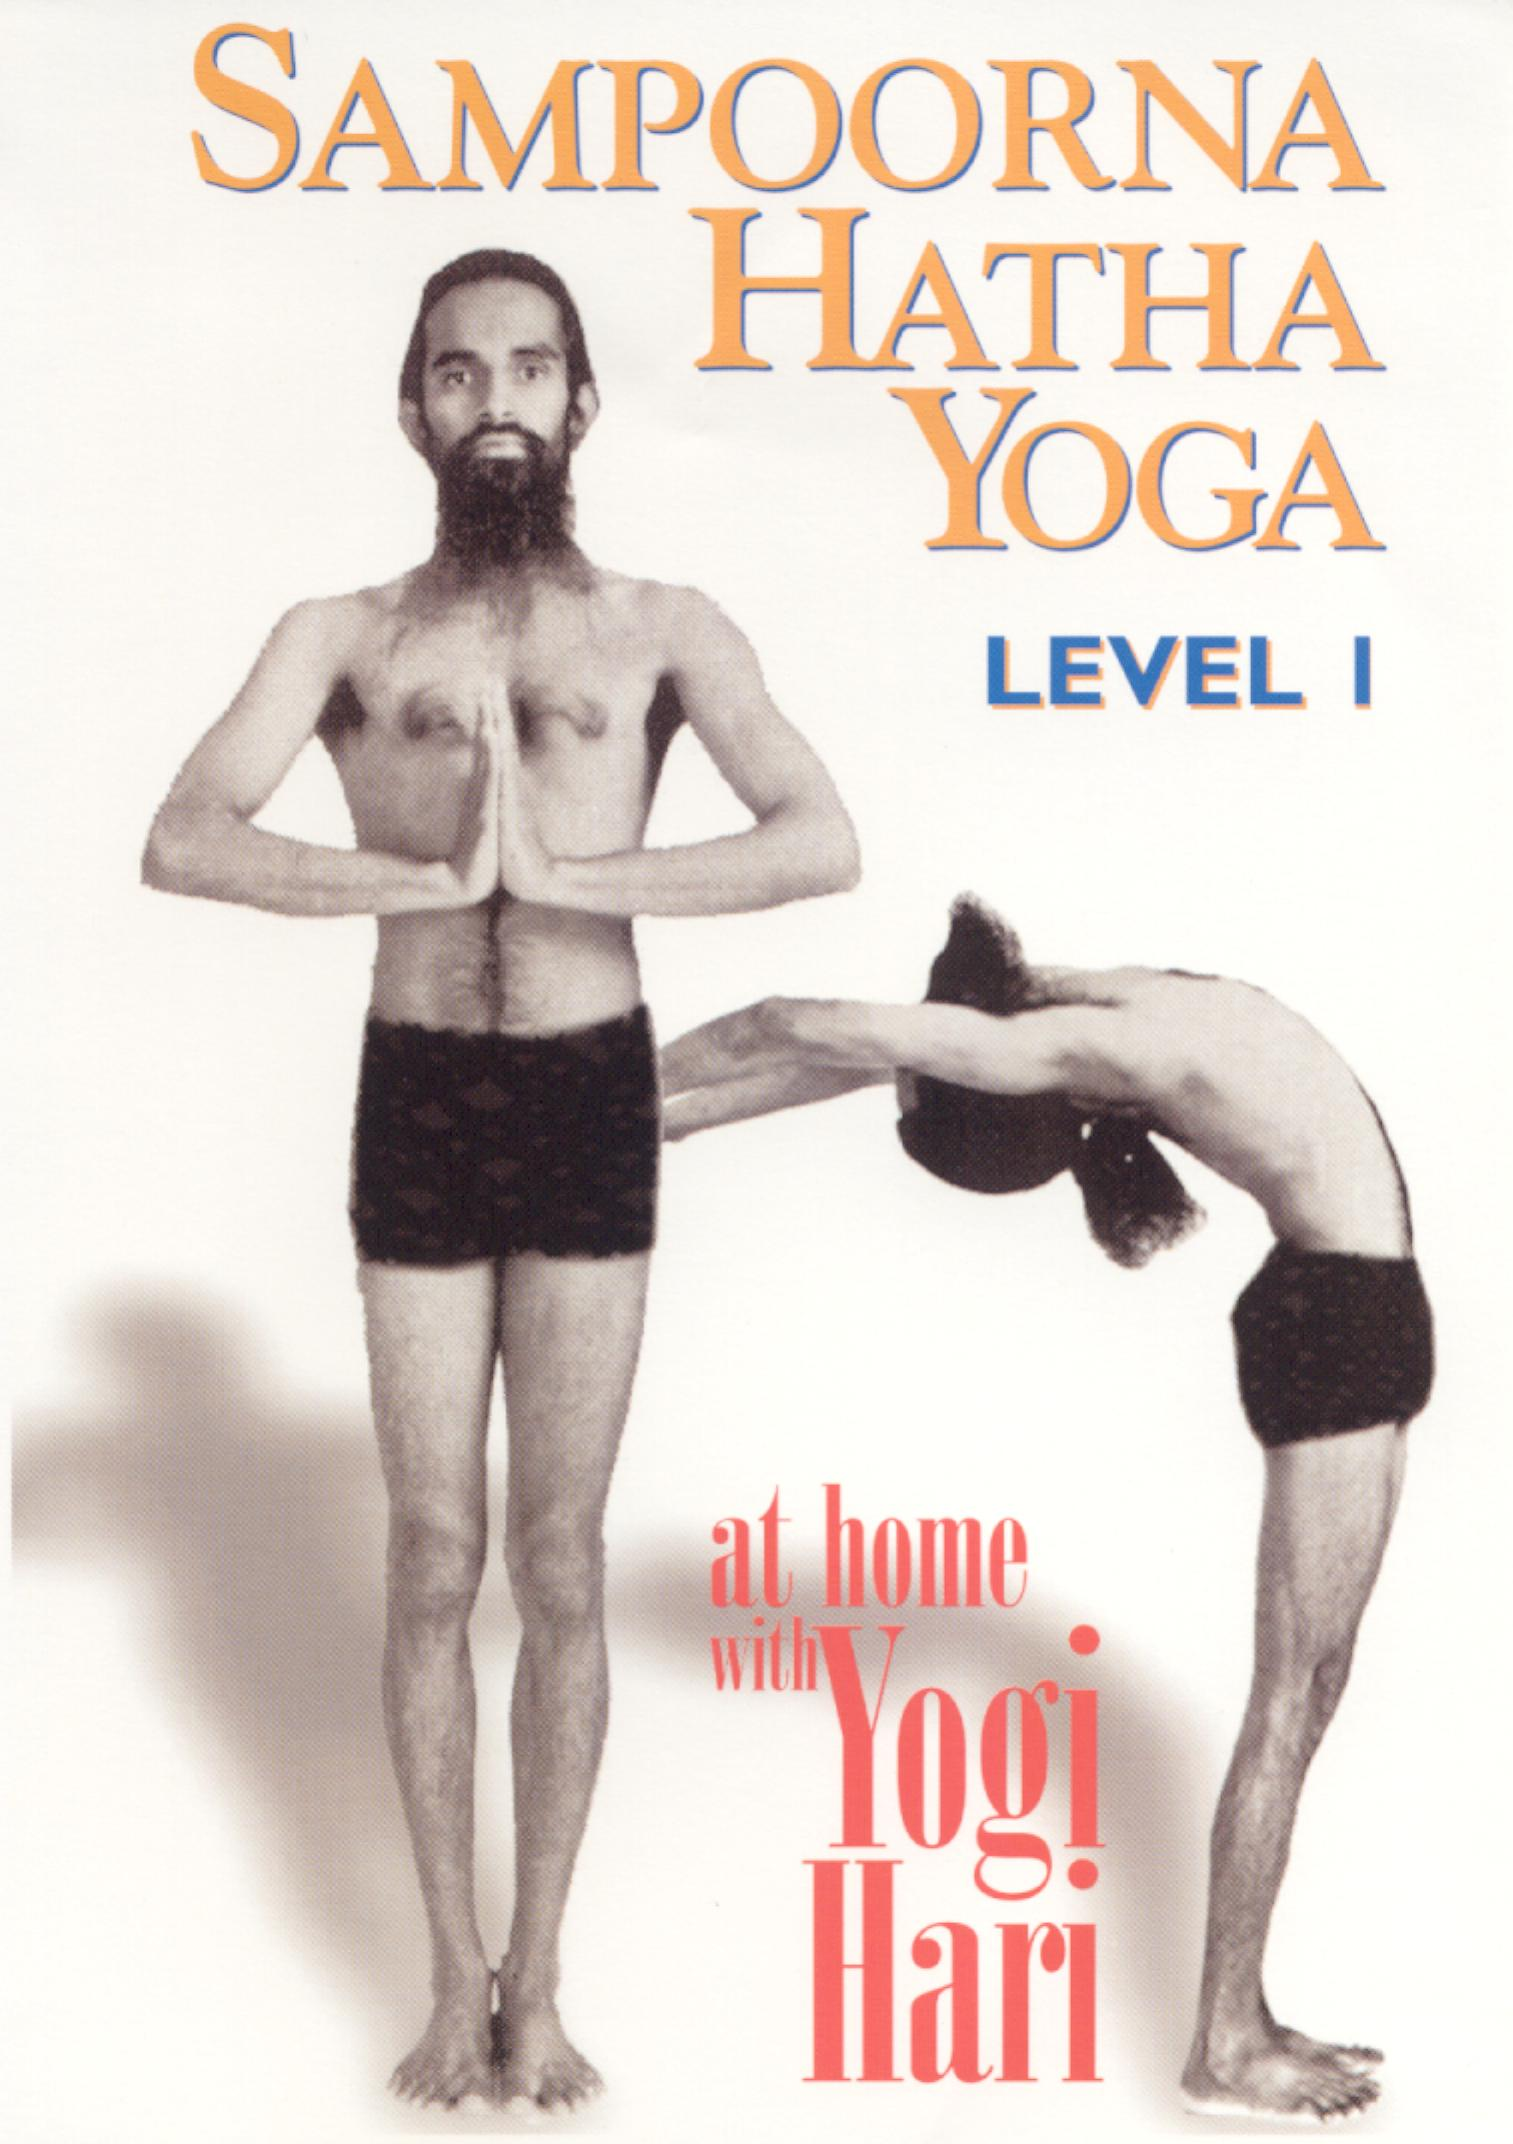 Sampoorna Hatha Yoga: Level 1